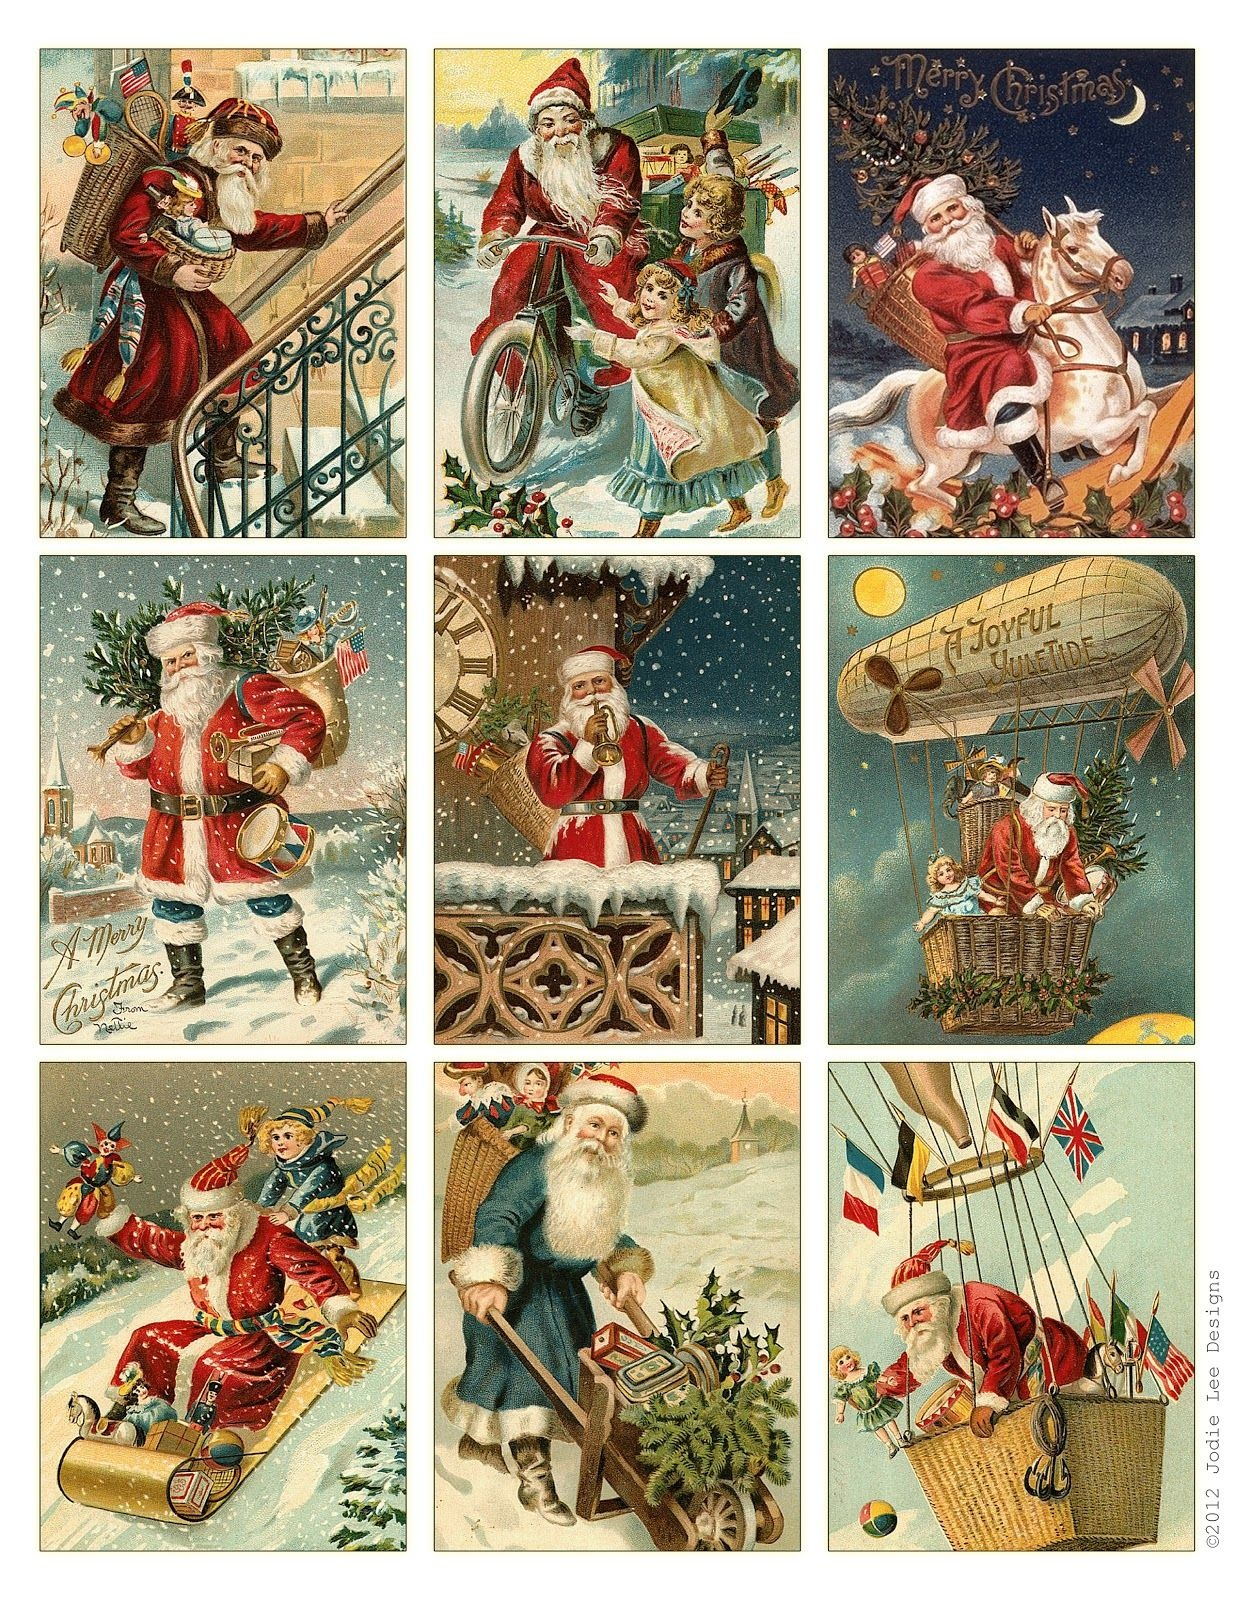 Free To Download! Printable Vintage Santa Tags Or Cards. | Free - Free Printable Vintage Christmas Tags For Gifts